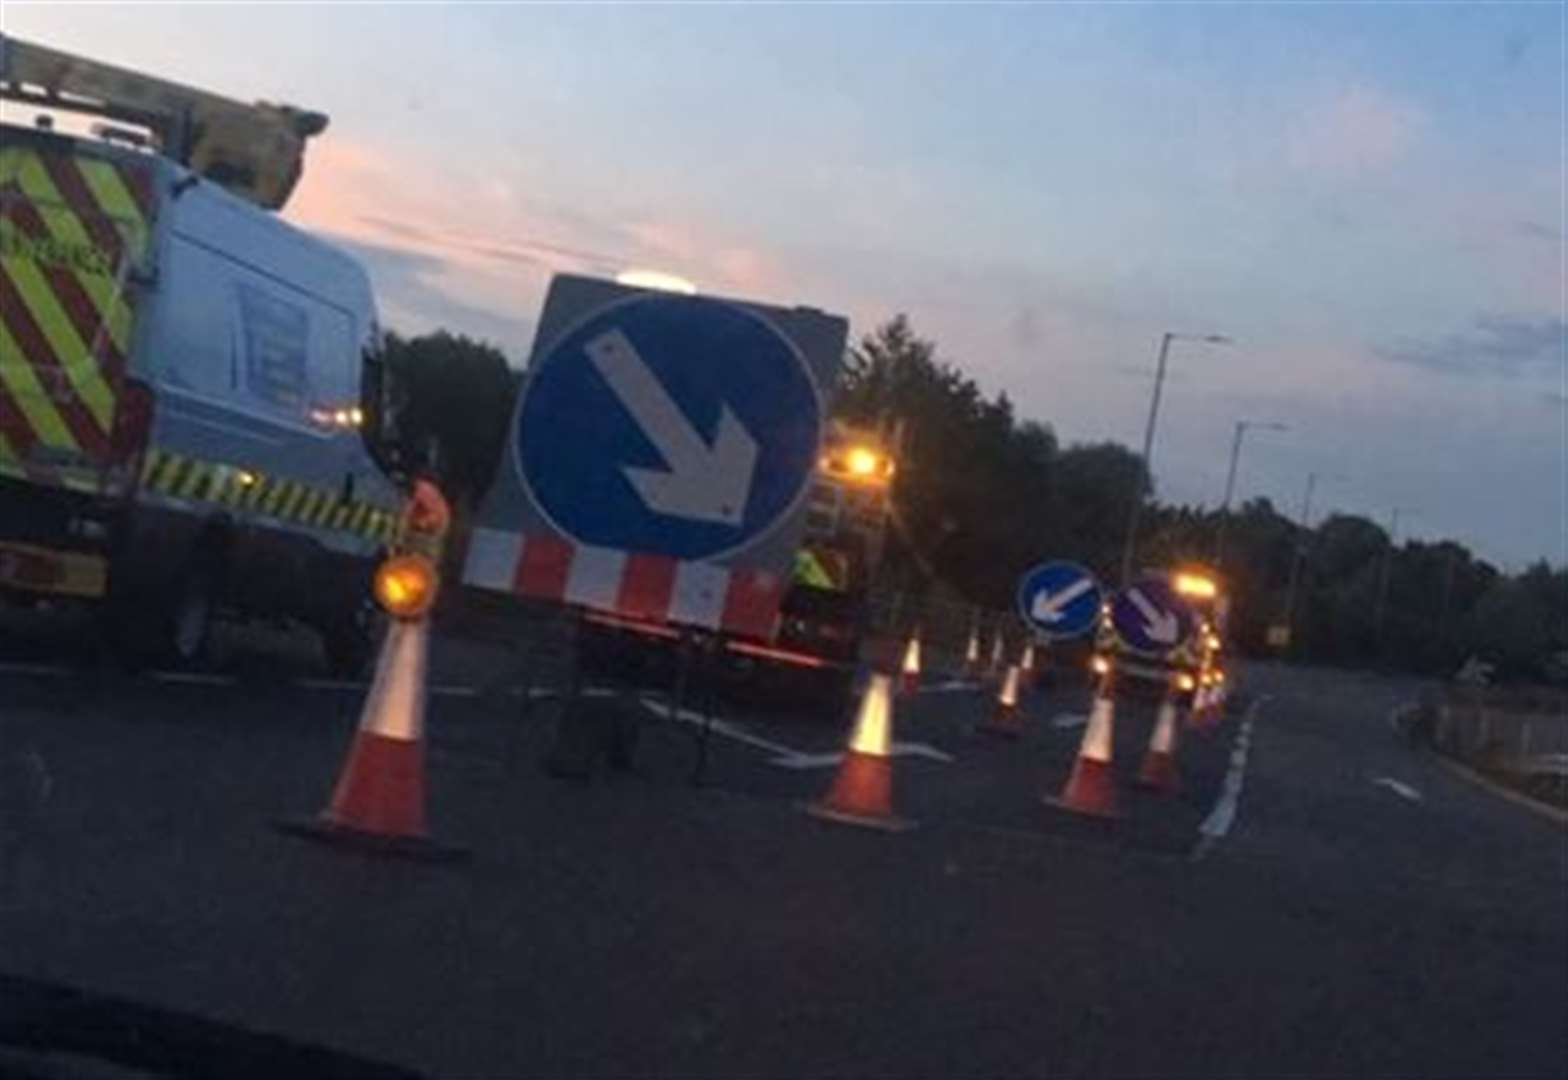 UPDATE: Motorists advised to find alternative routes after tractor and trailer overturns